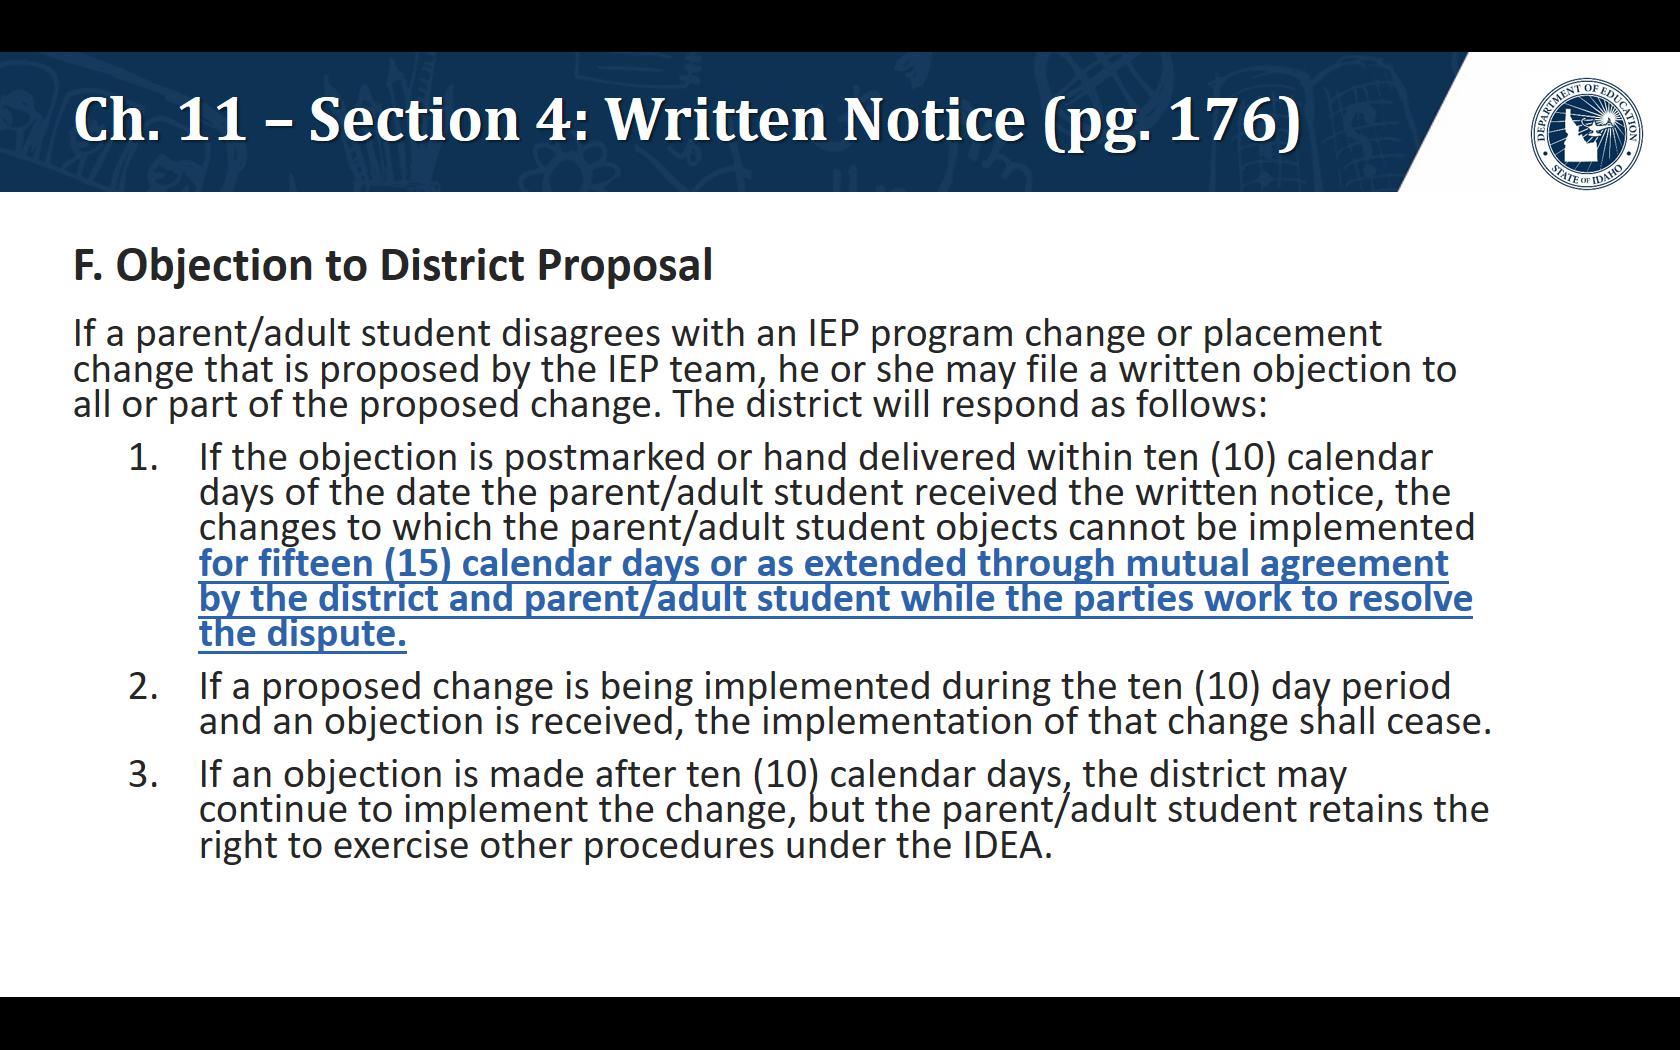 F. Objection to District Proposal. If a parent/adult student disagrees with an IEP program change or placement change that is proposed by the IEP team, he or she may file a written objection to all or part of the proposed change. The district will respond as follows: If the objection is postmarked or hand delivered within ten (10) calendar days of the date the parent/adult student received the written notice, the changes to which the parent/adult student objects cannot be implemented for fifteen (15) calendar days or as extended through mutual agreement by the district and parent/adult student while the parties work to resolve the dispute. If a proposed change is being implemented during the ten (10) day period and an objection is received, the implementation of that change shall cease. If an objection is made after ten (10) calendar days, the district may continue to implement the change, but the parent/adult student retains the right to exercise other procedures under the IDEA.